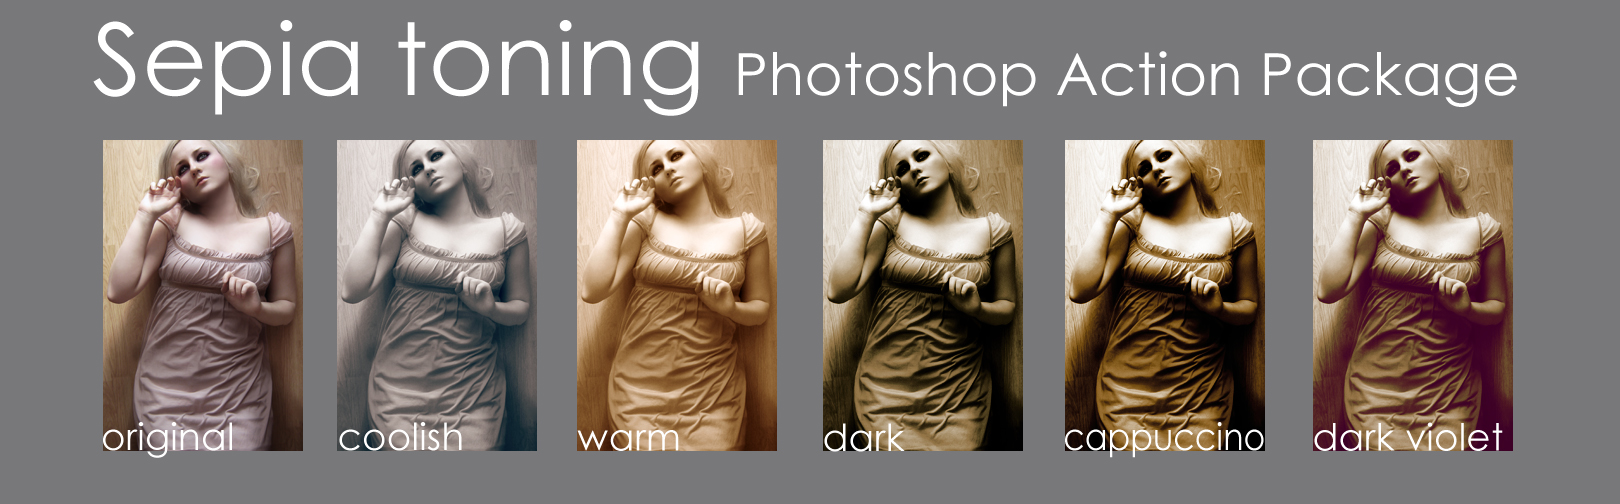 Sepia toning - Action package